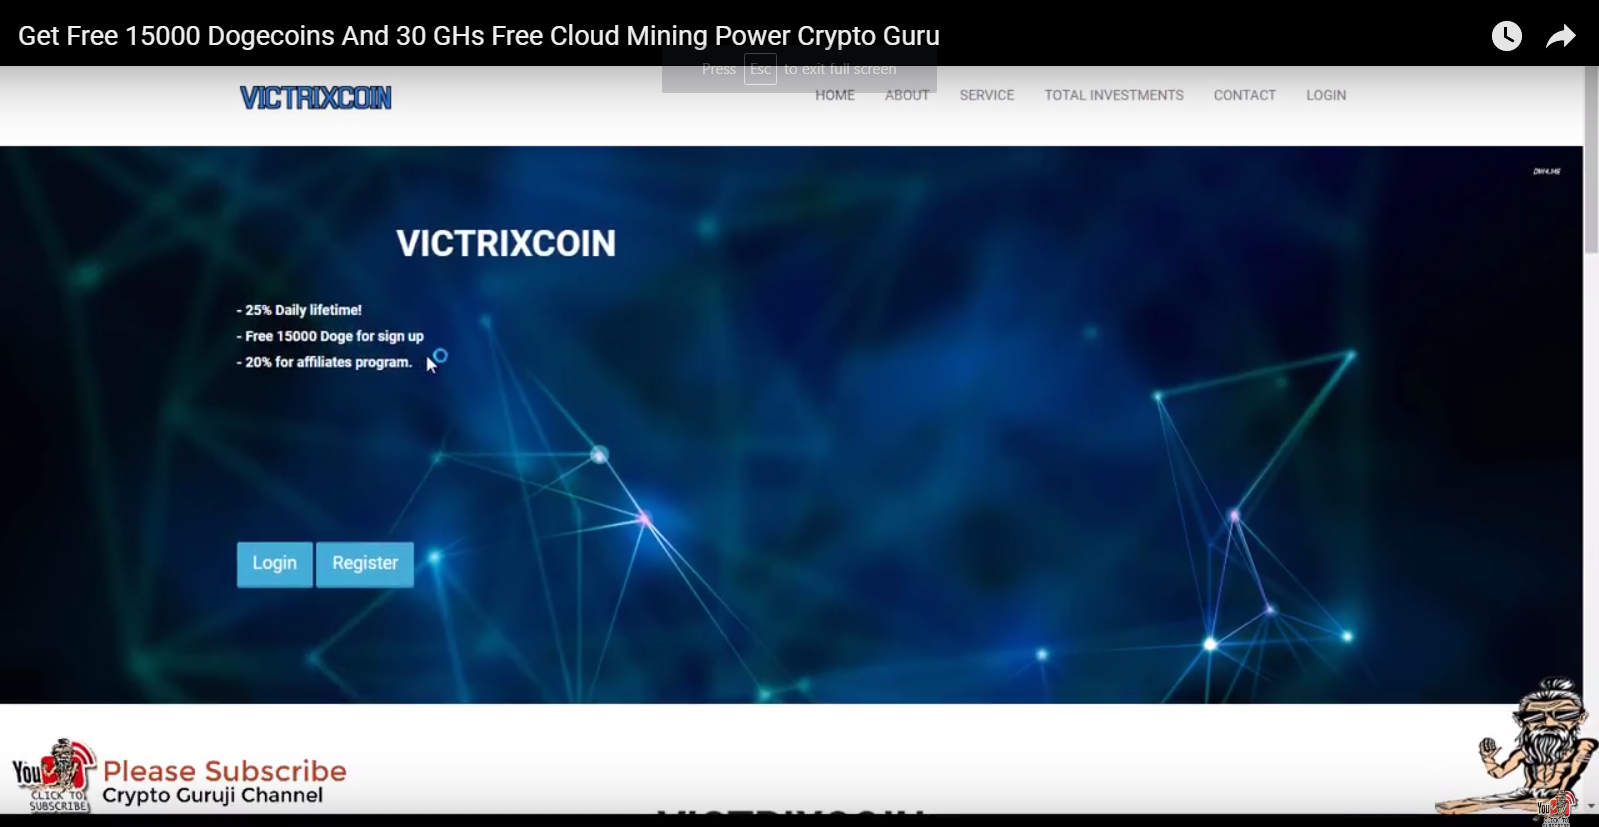 Get Free 15000 Dogecoins And 30 GHs Free Cloud Mining Power Crypto